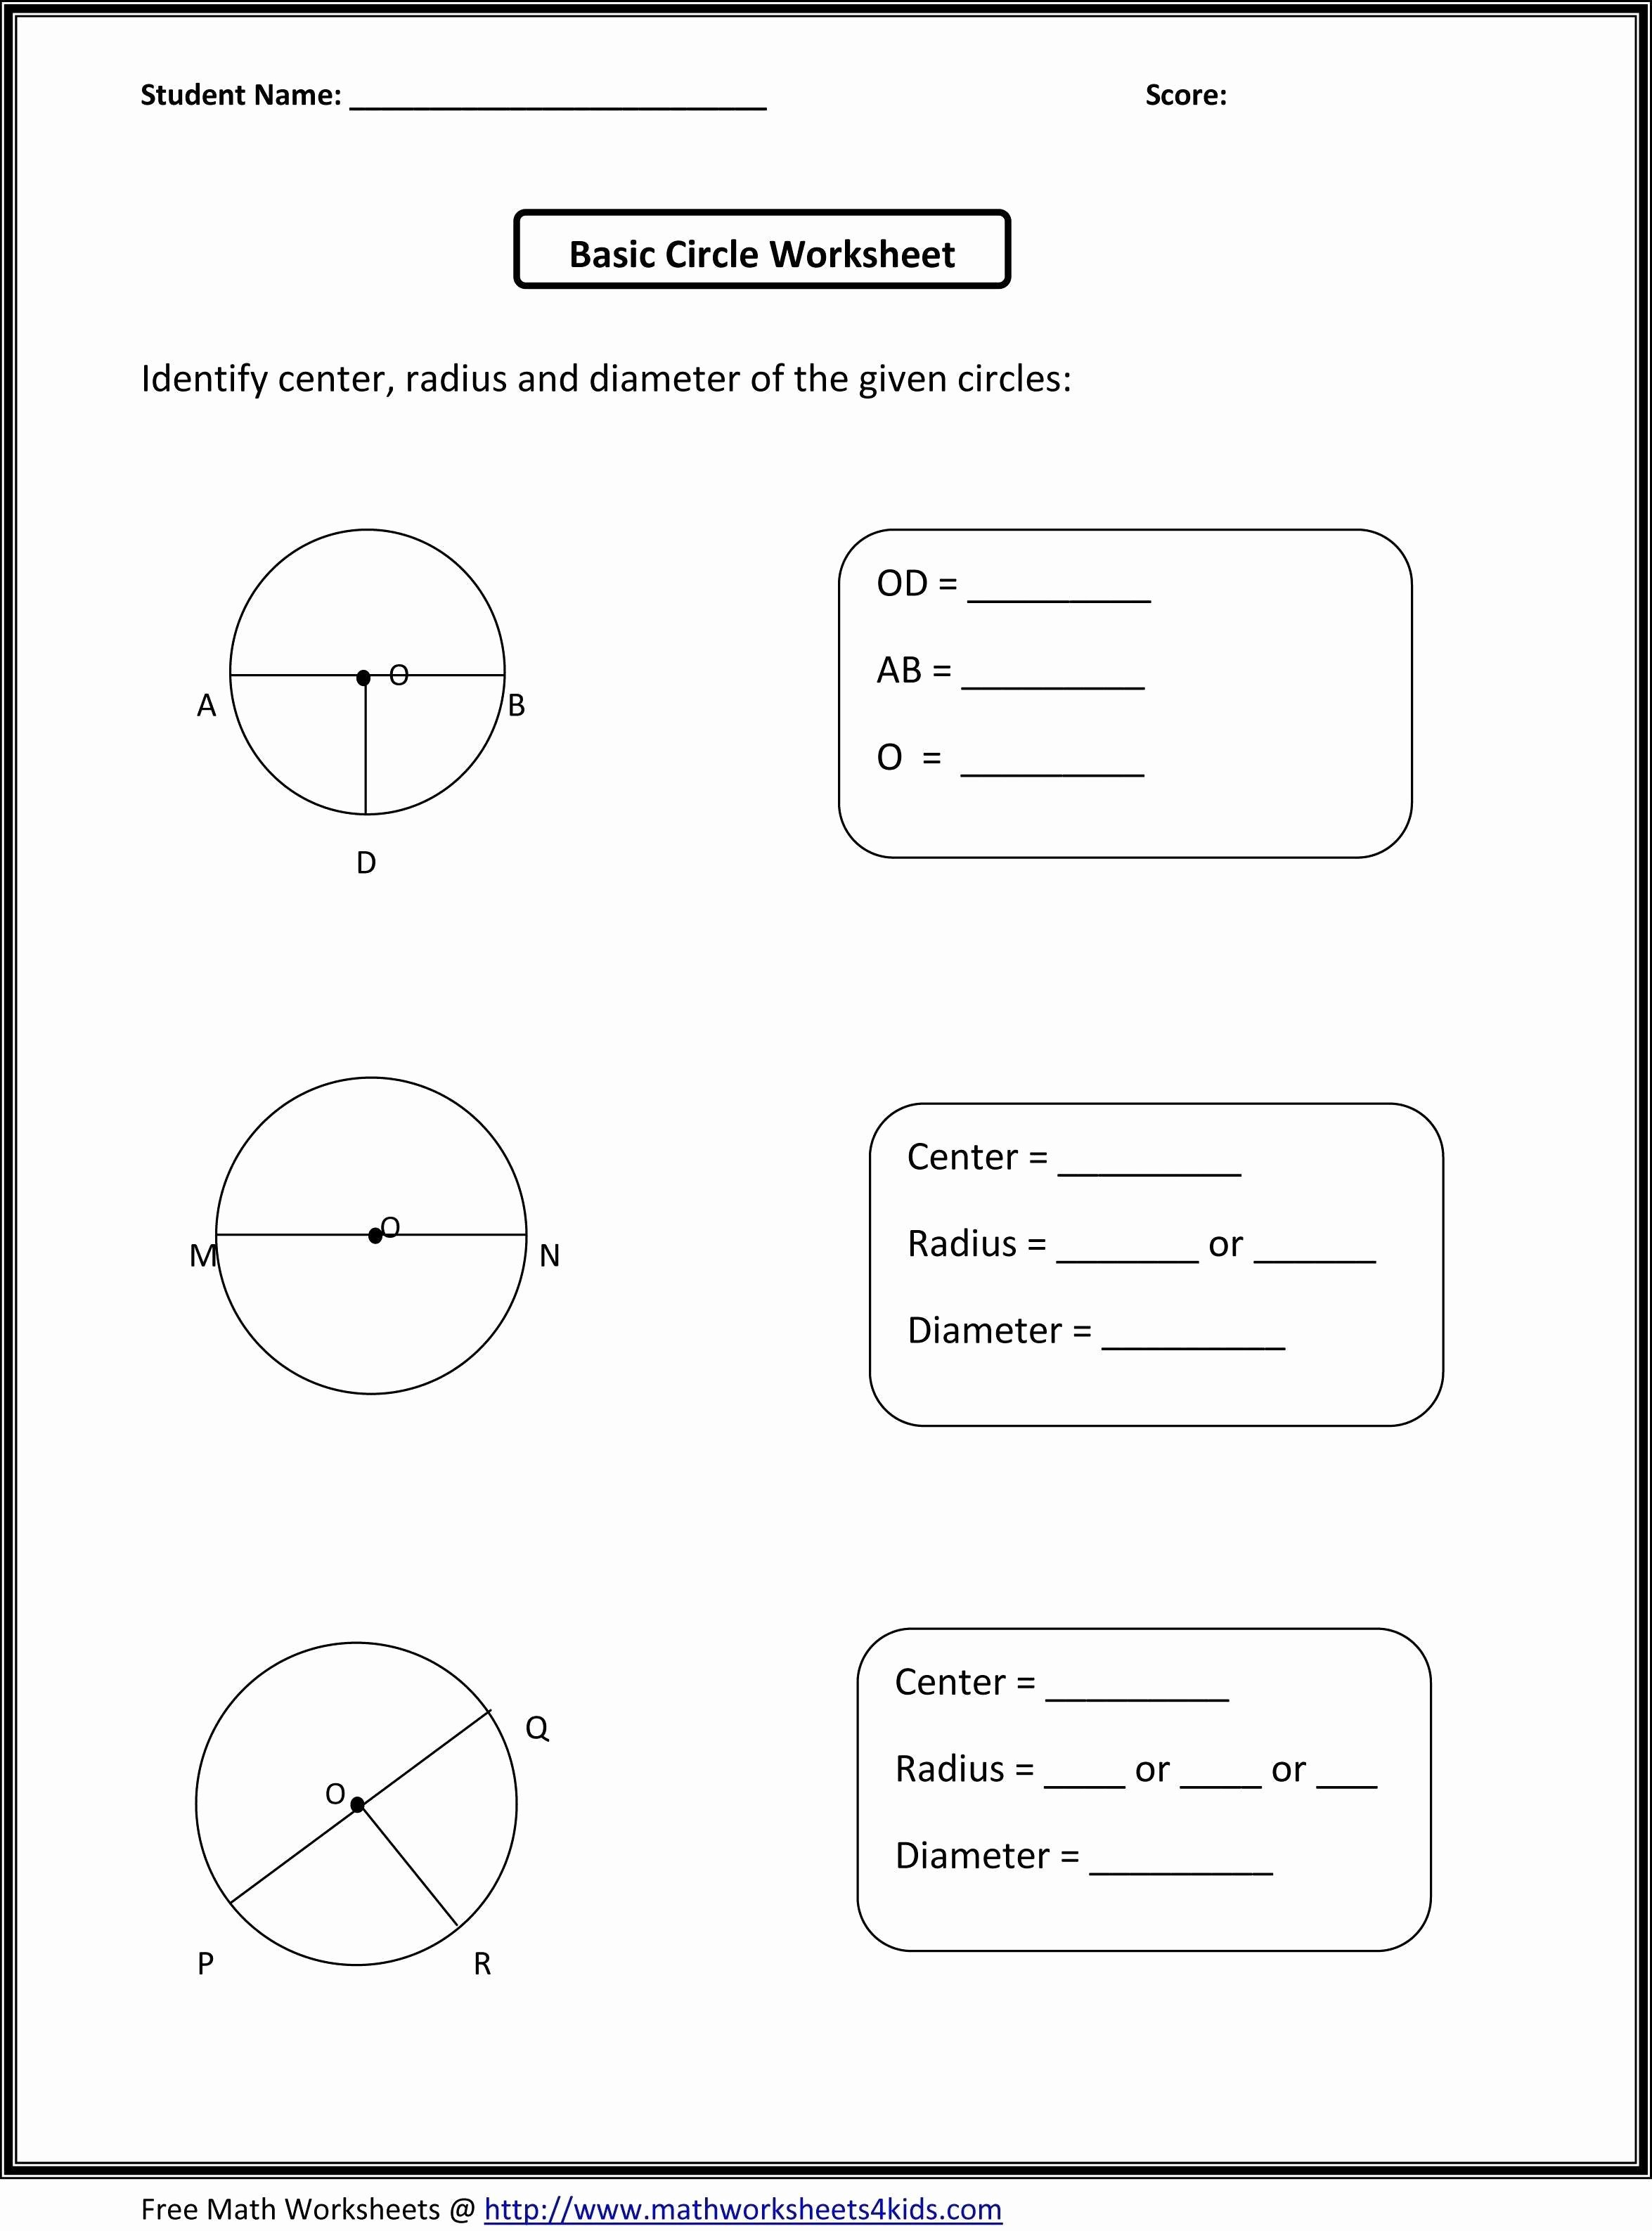 Linear Inequalities Word Problems Worksheet Awesome Linear Inequalities Worksheet Worksheet Idea Template